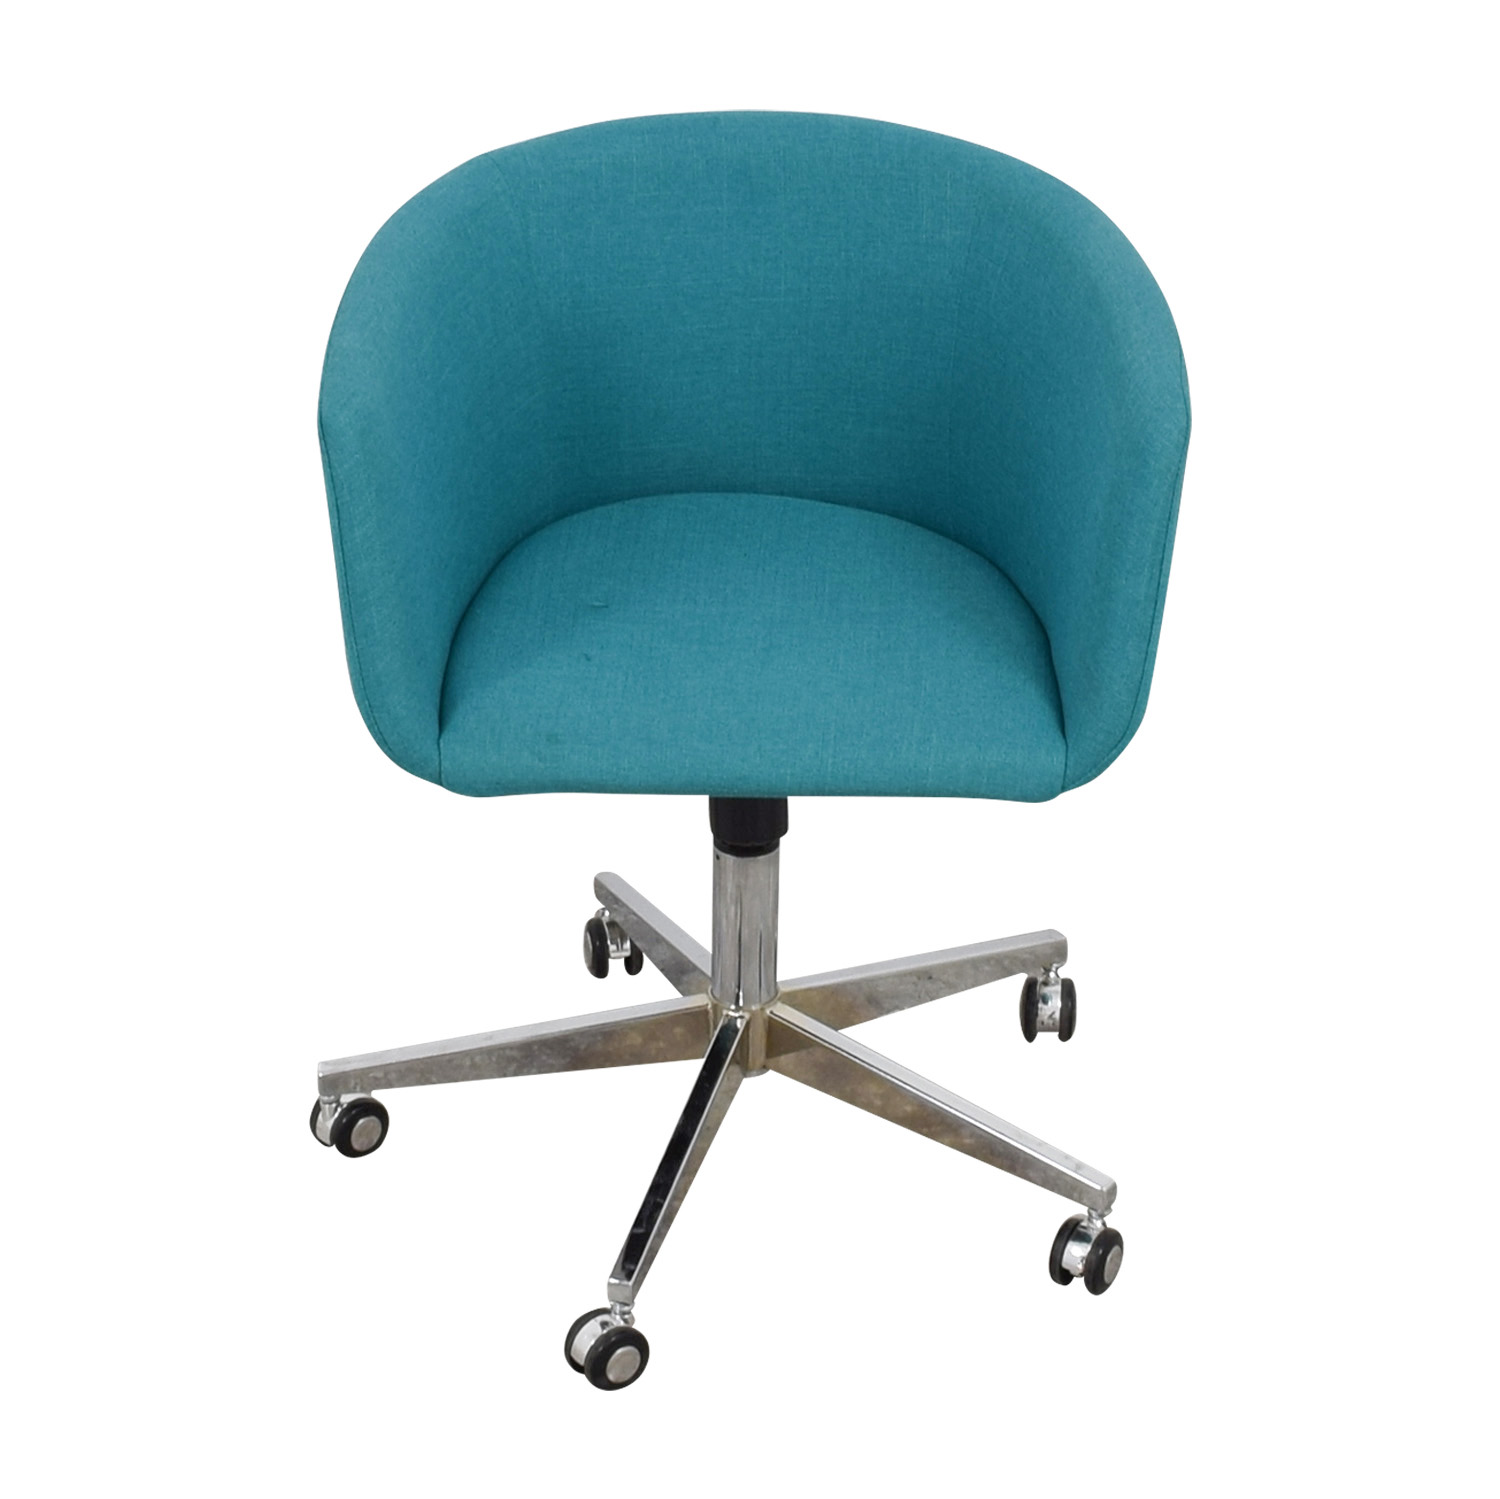 teal computer chair upholstered dining room chairs with casters 37 off cb2 desk castors